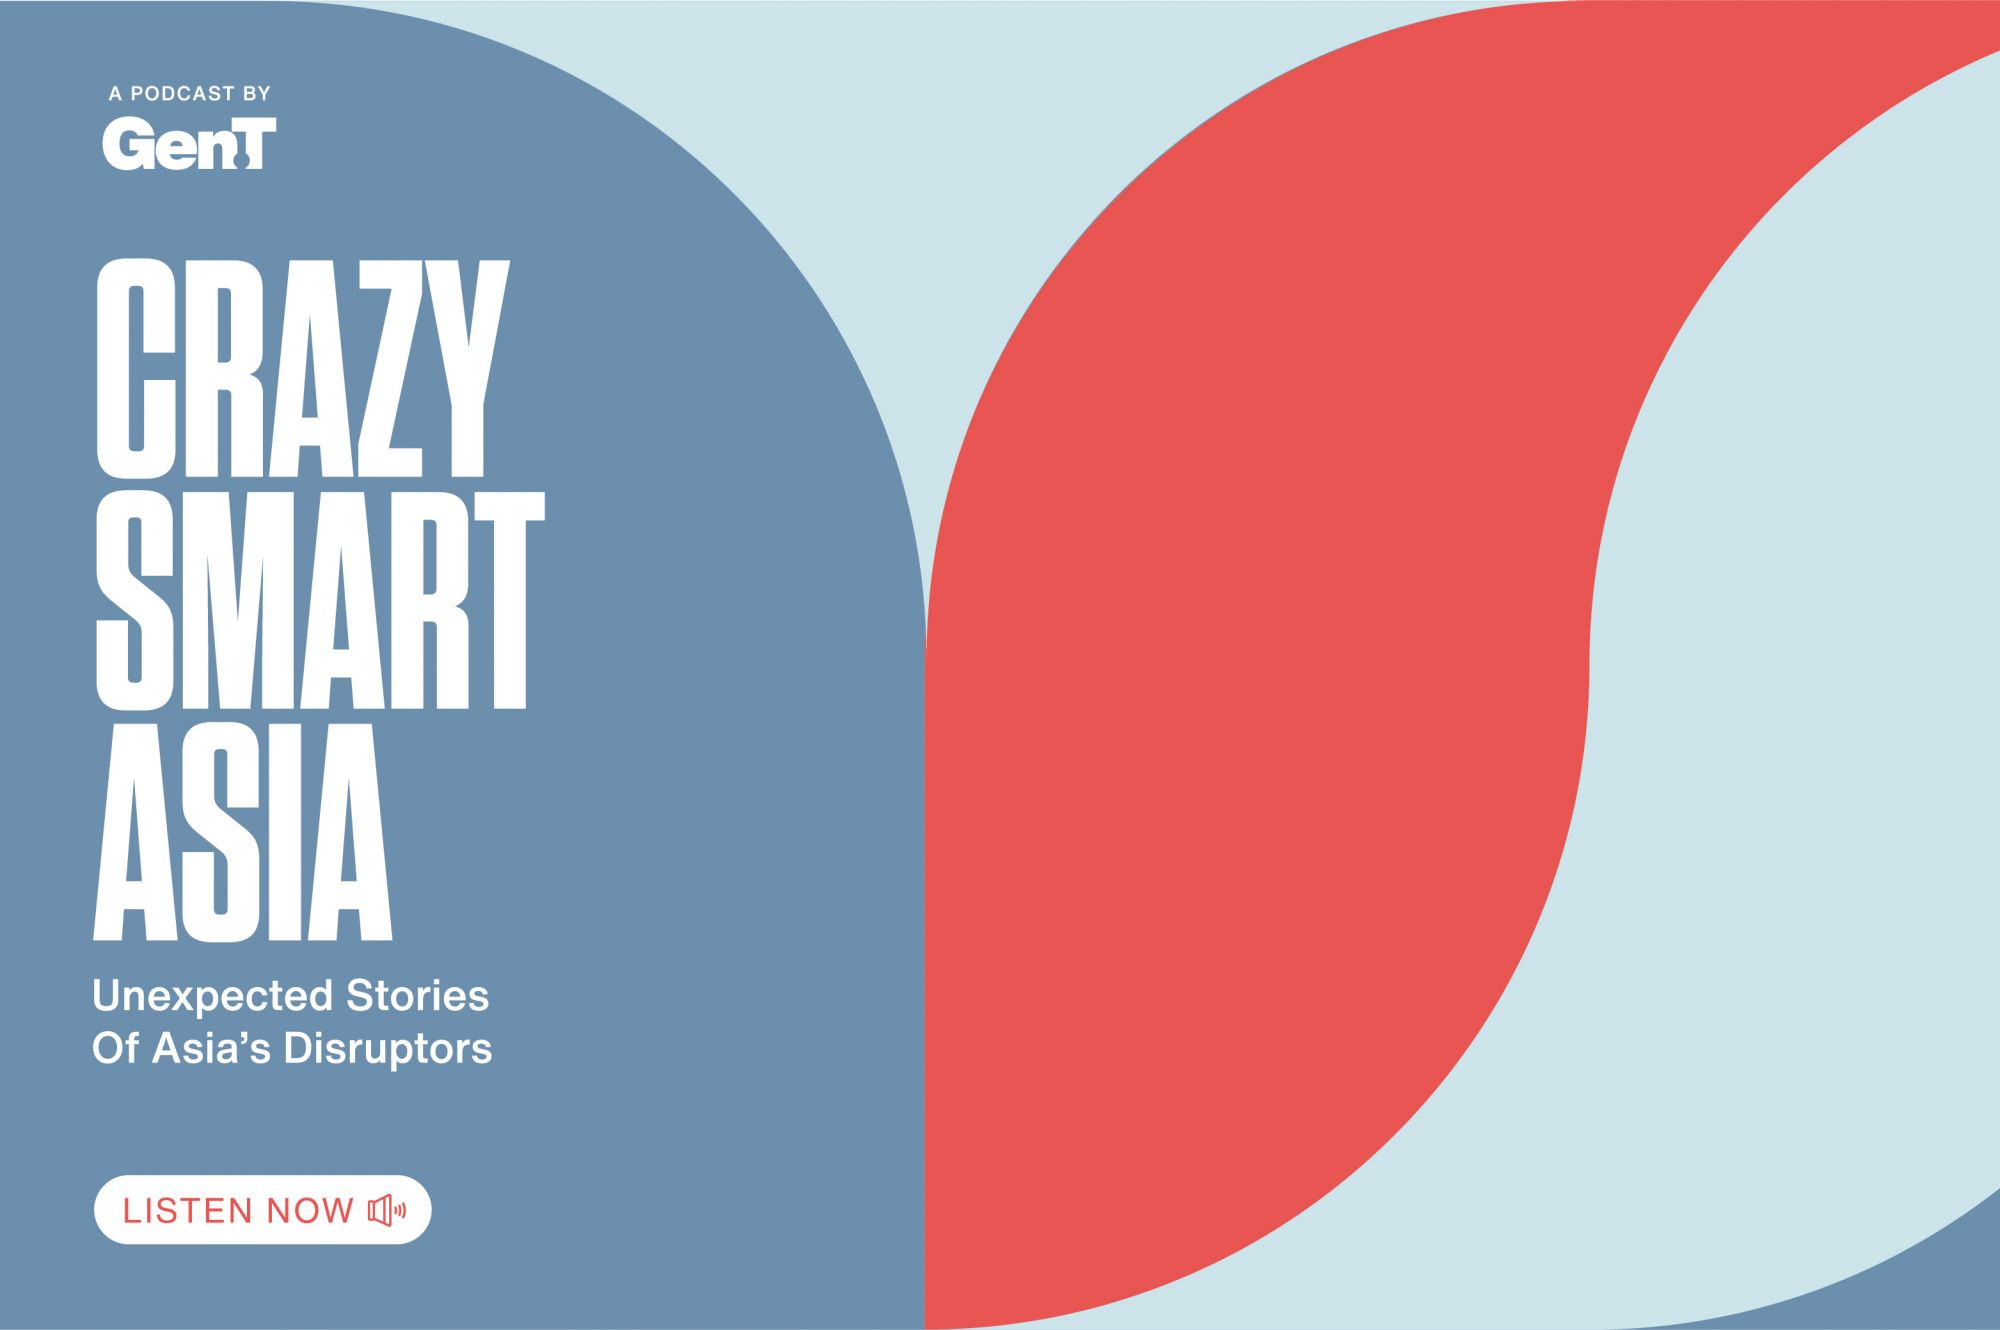 Crazy Smart Asia: A New Podcast From Generation T